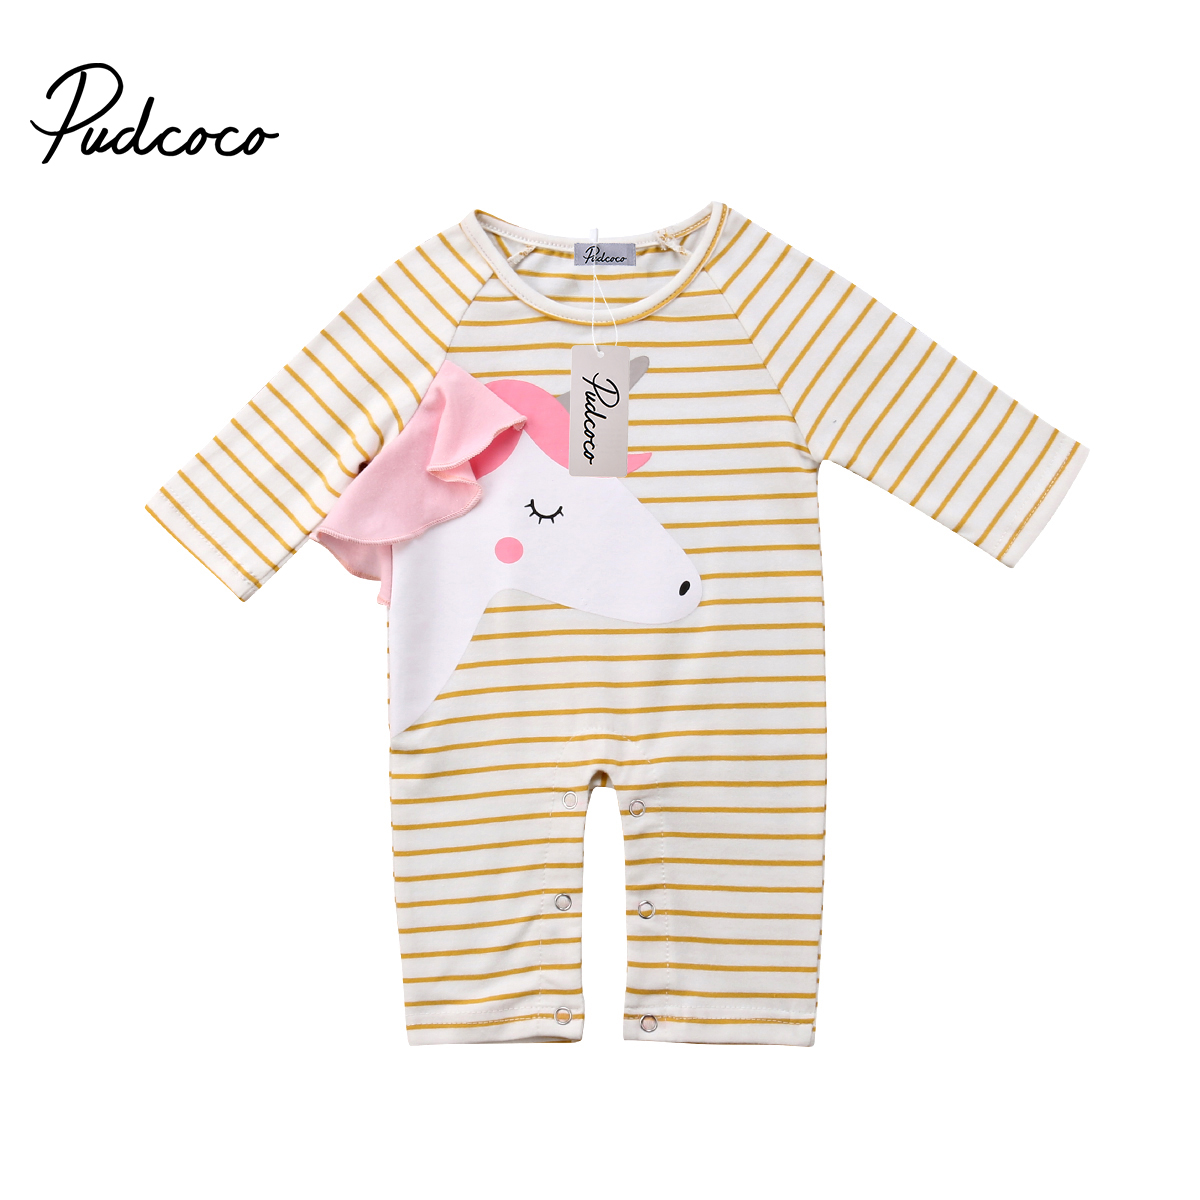 Pudcoco Baby Gilr   Romper   Striped One Piece Suit Baby Girl Clohtes Cartoon Unicorn Sweet Long Sleeve   Rompers   Autumn Fits Costume